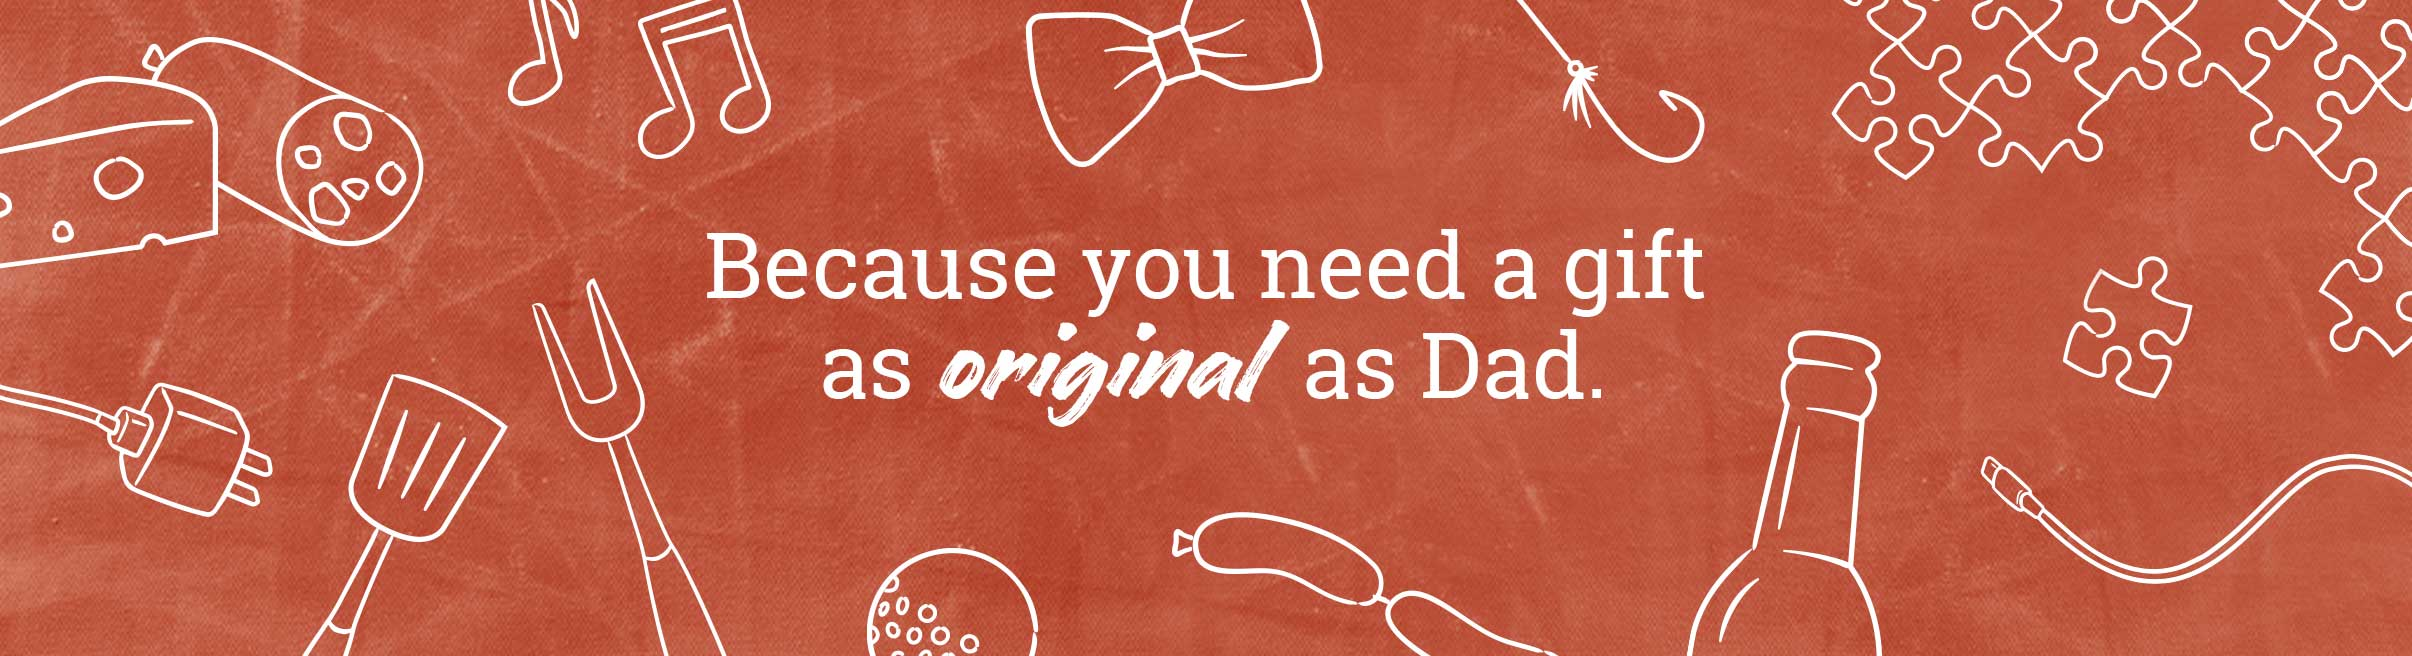 Because you need a gift as original as Dad.